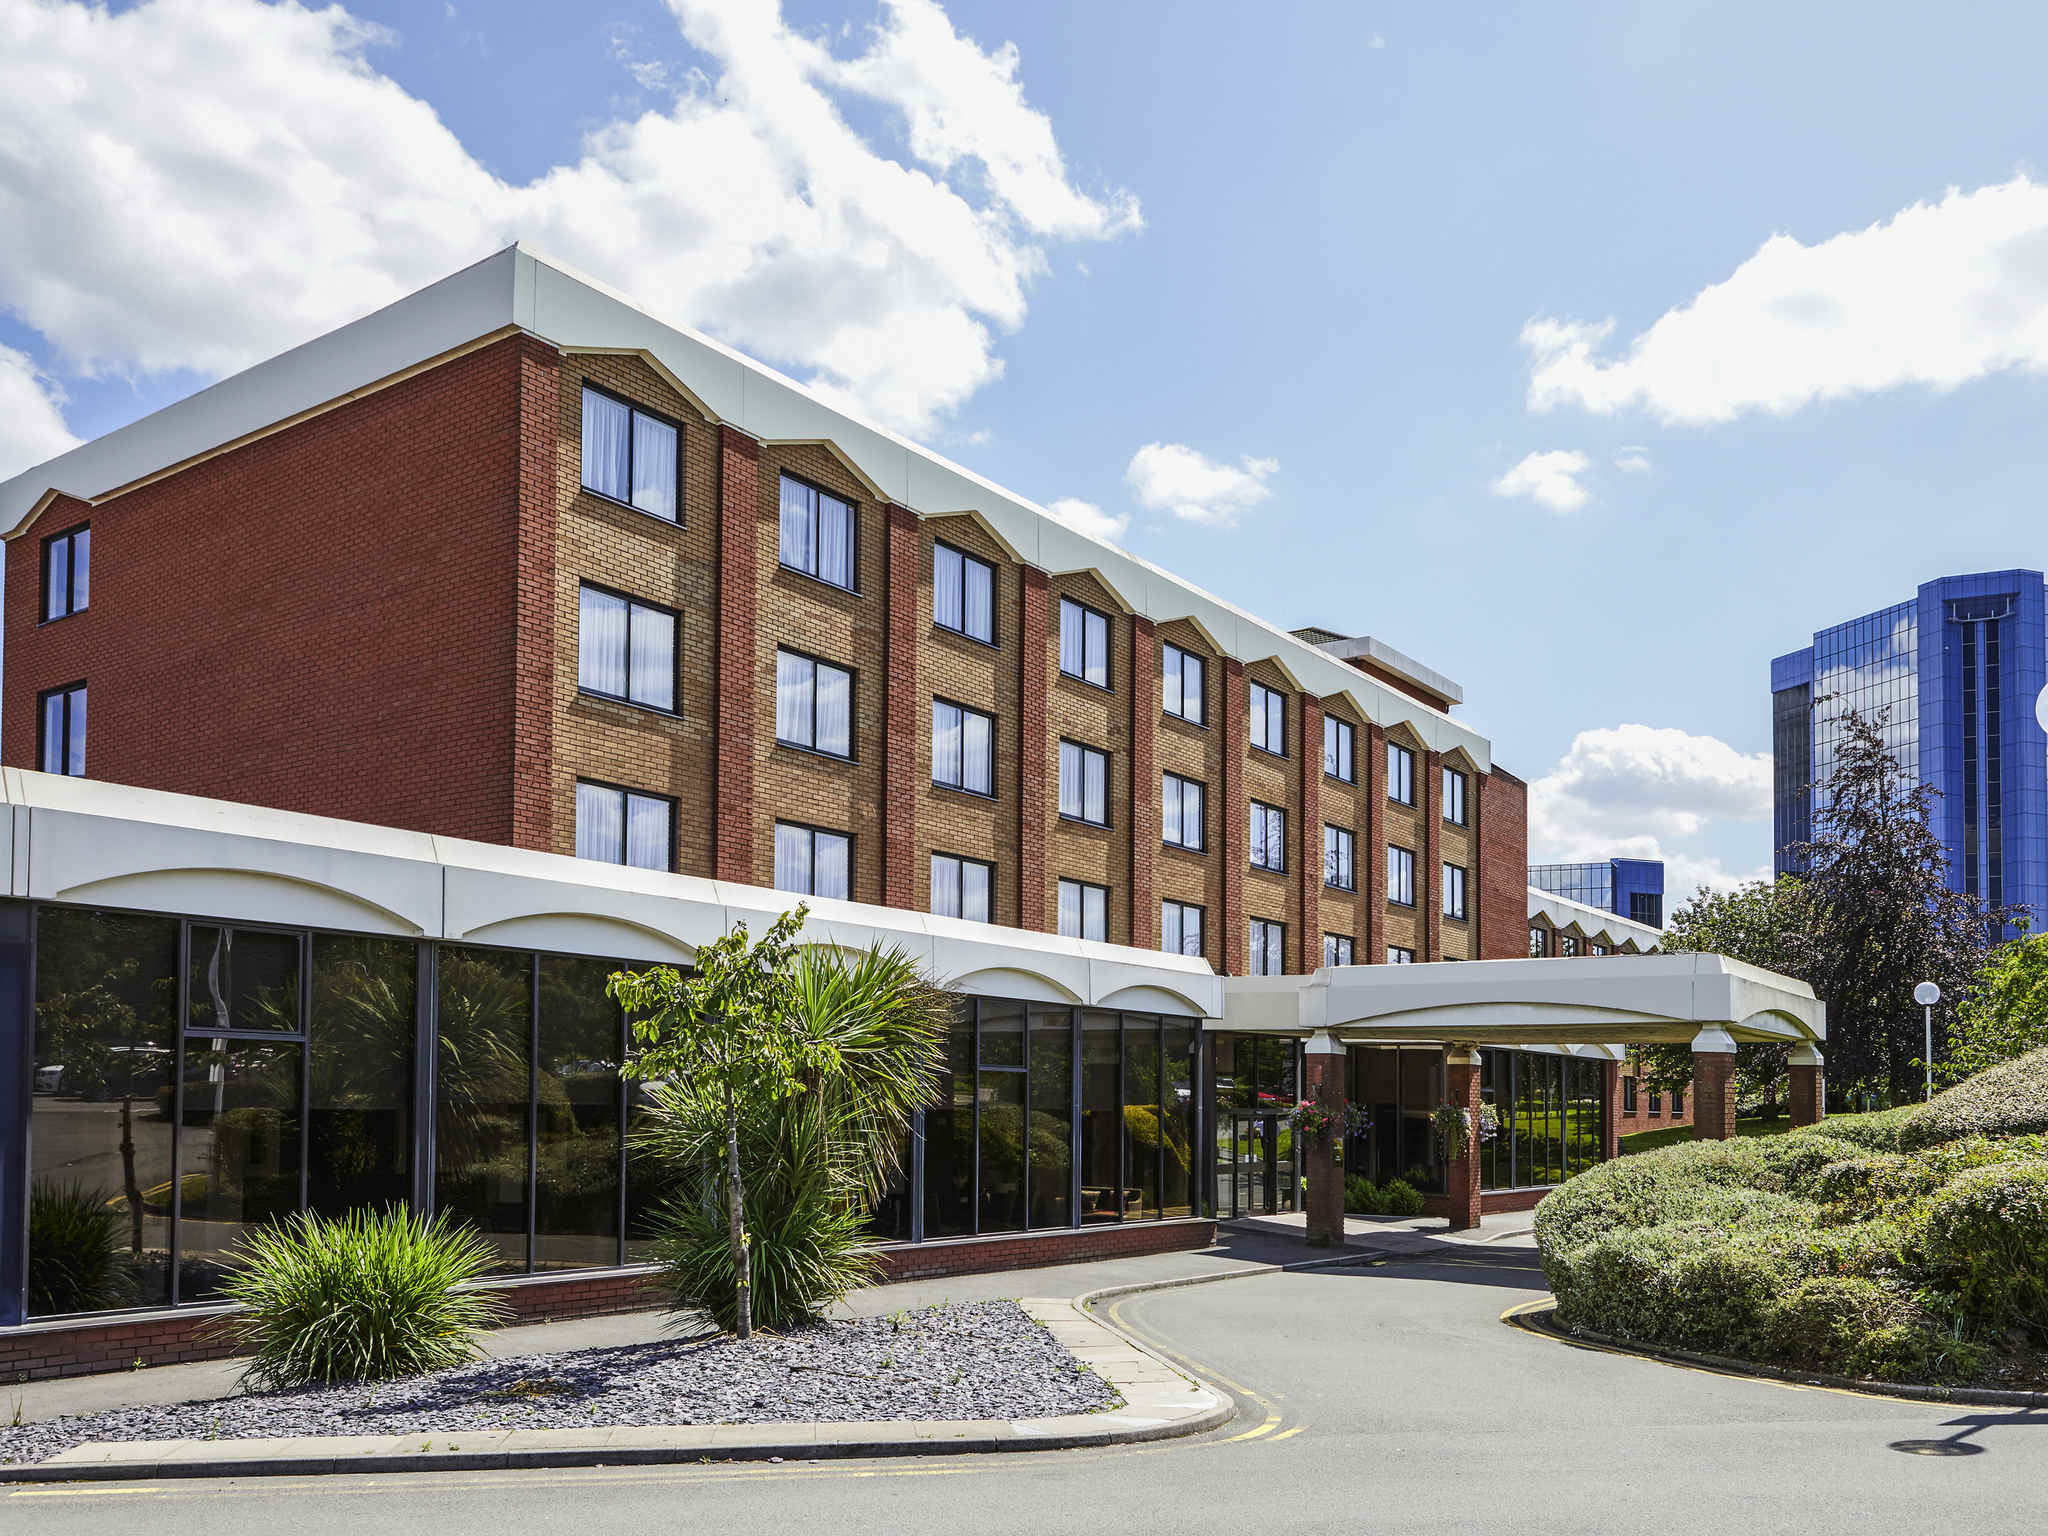 Hotel – The Telford Centre Hotel By AccorHotels (Now Open)